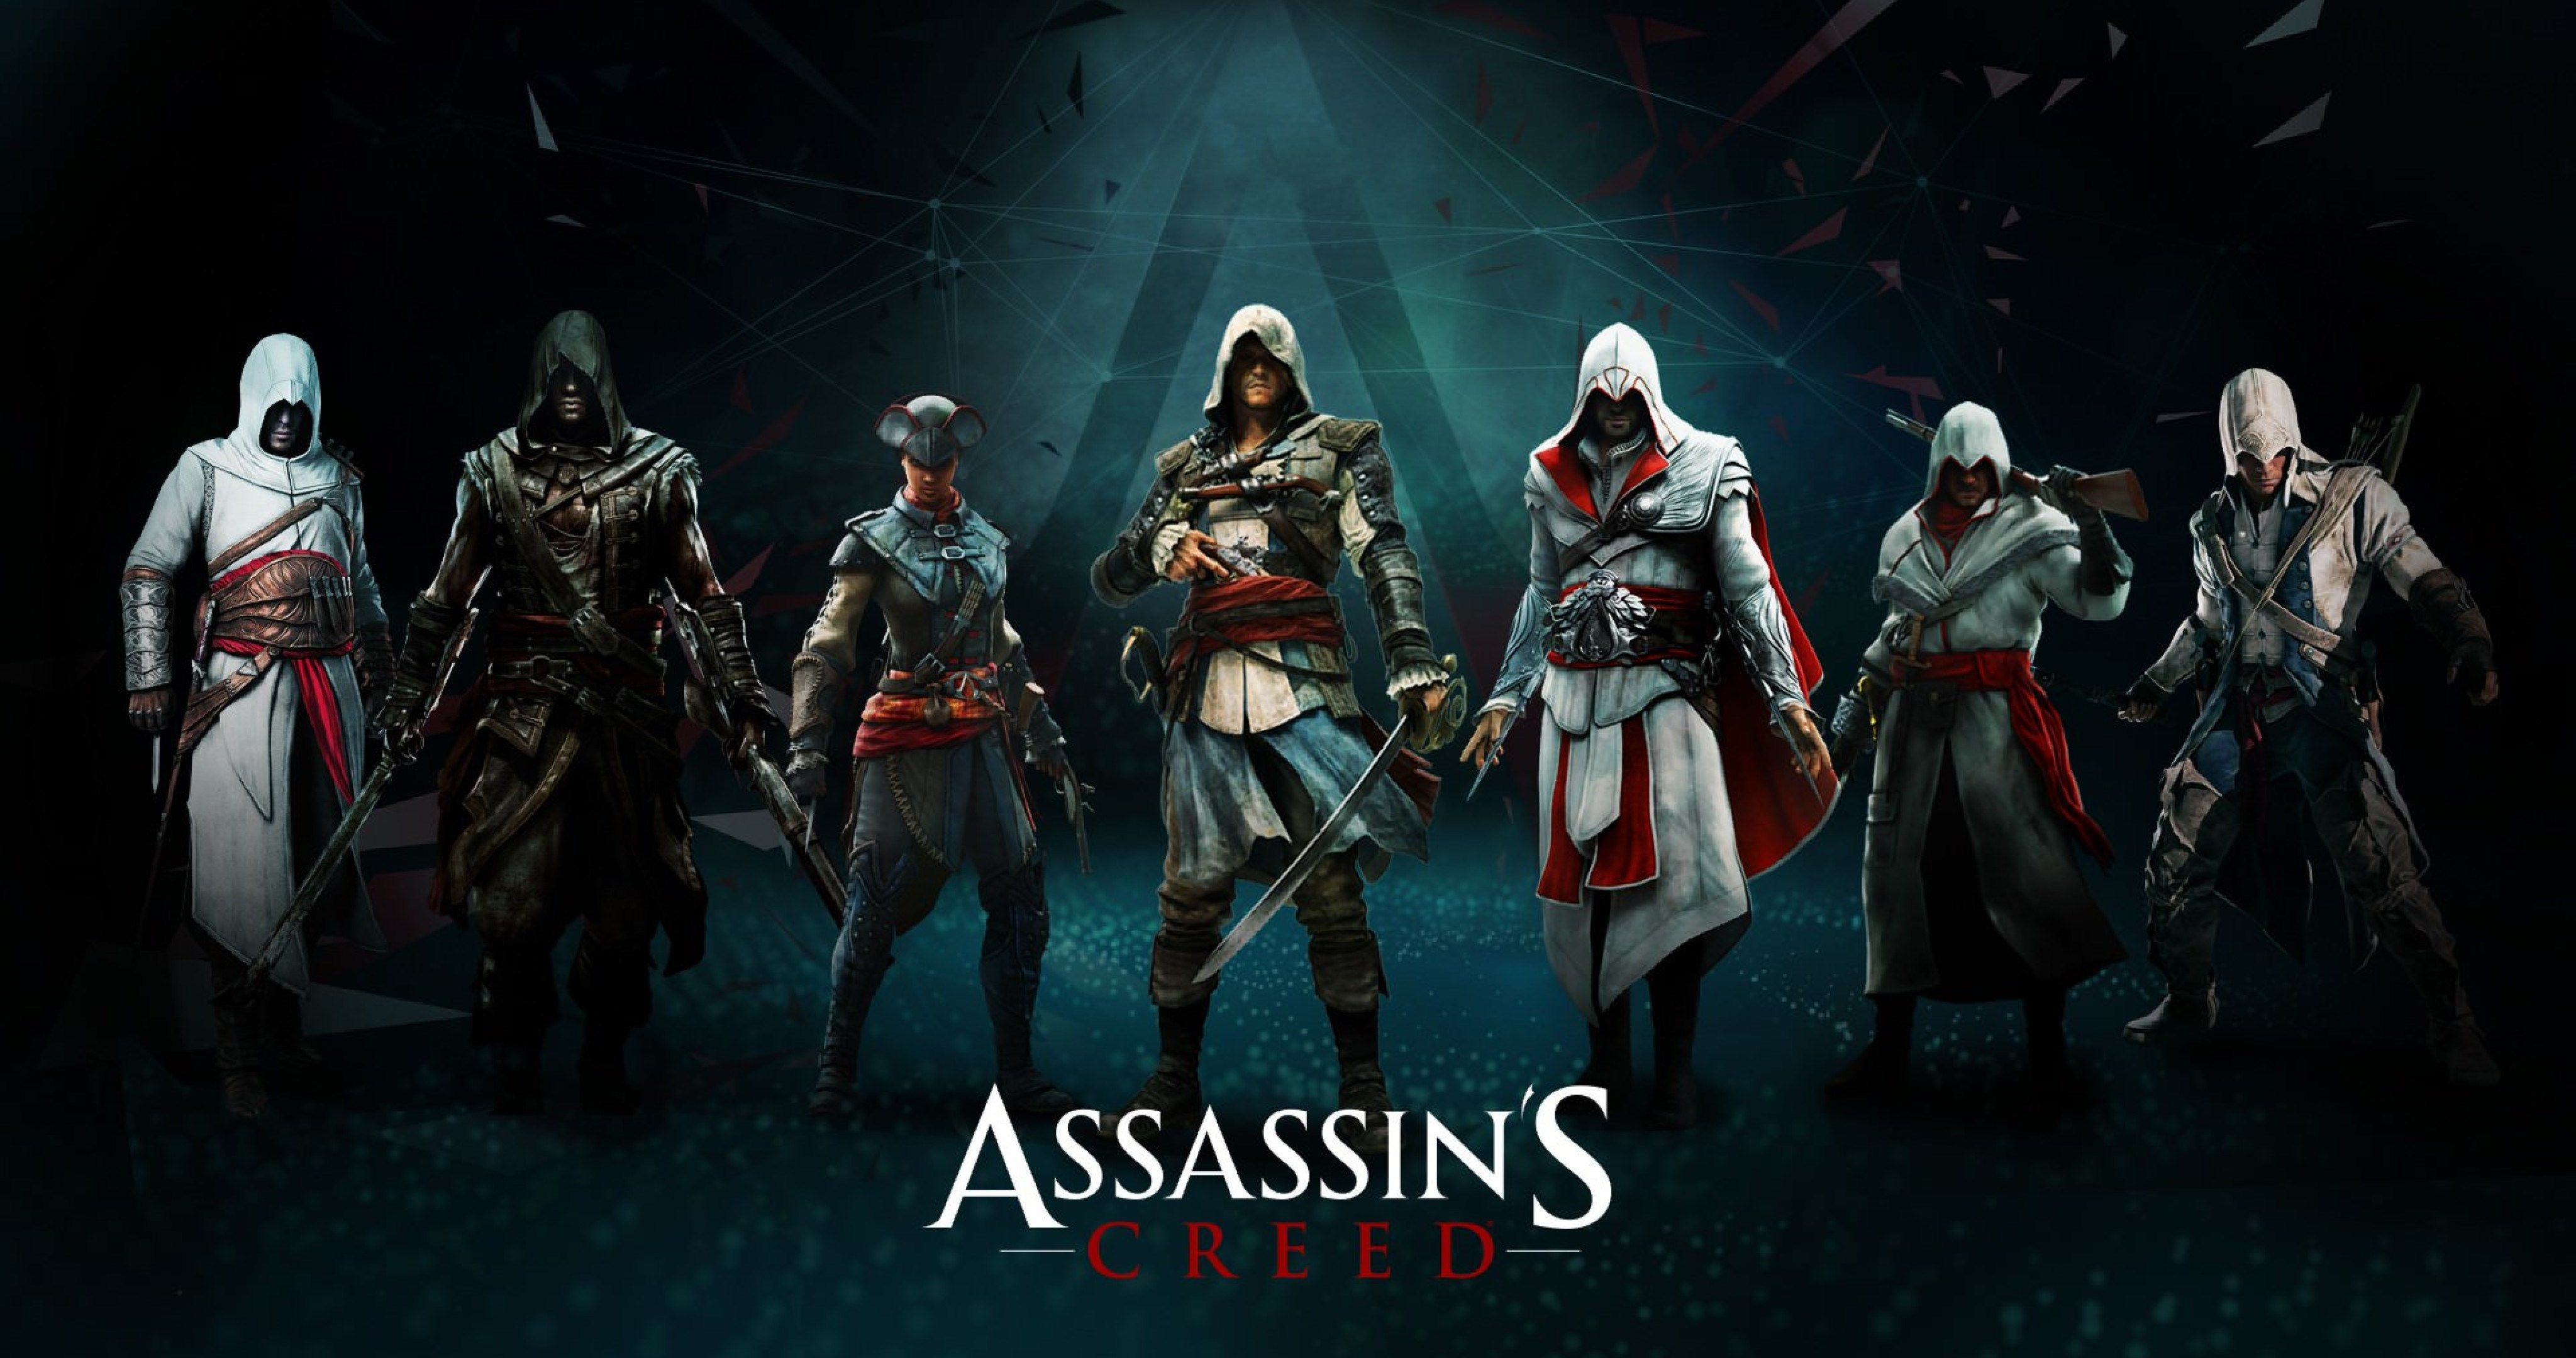 Assassins Creed Wallpaper 4k Posted By Samantha Cunningham